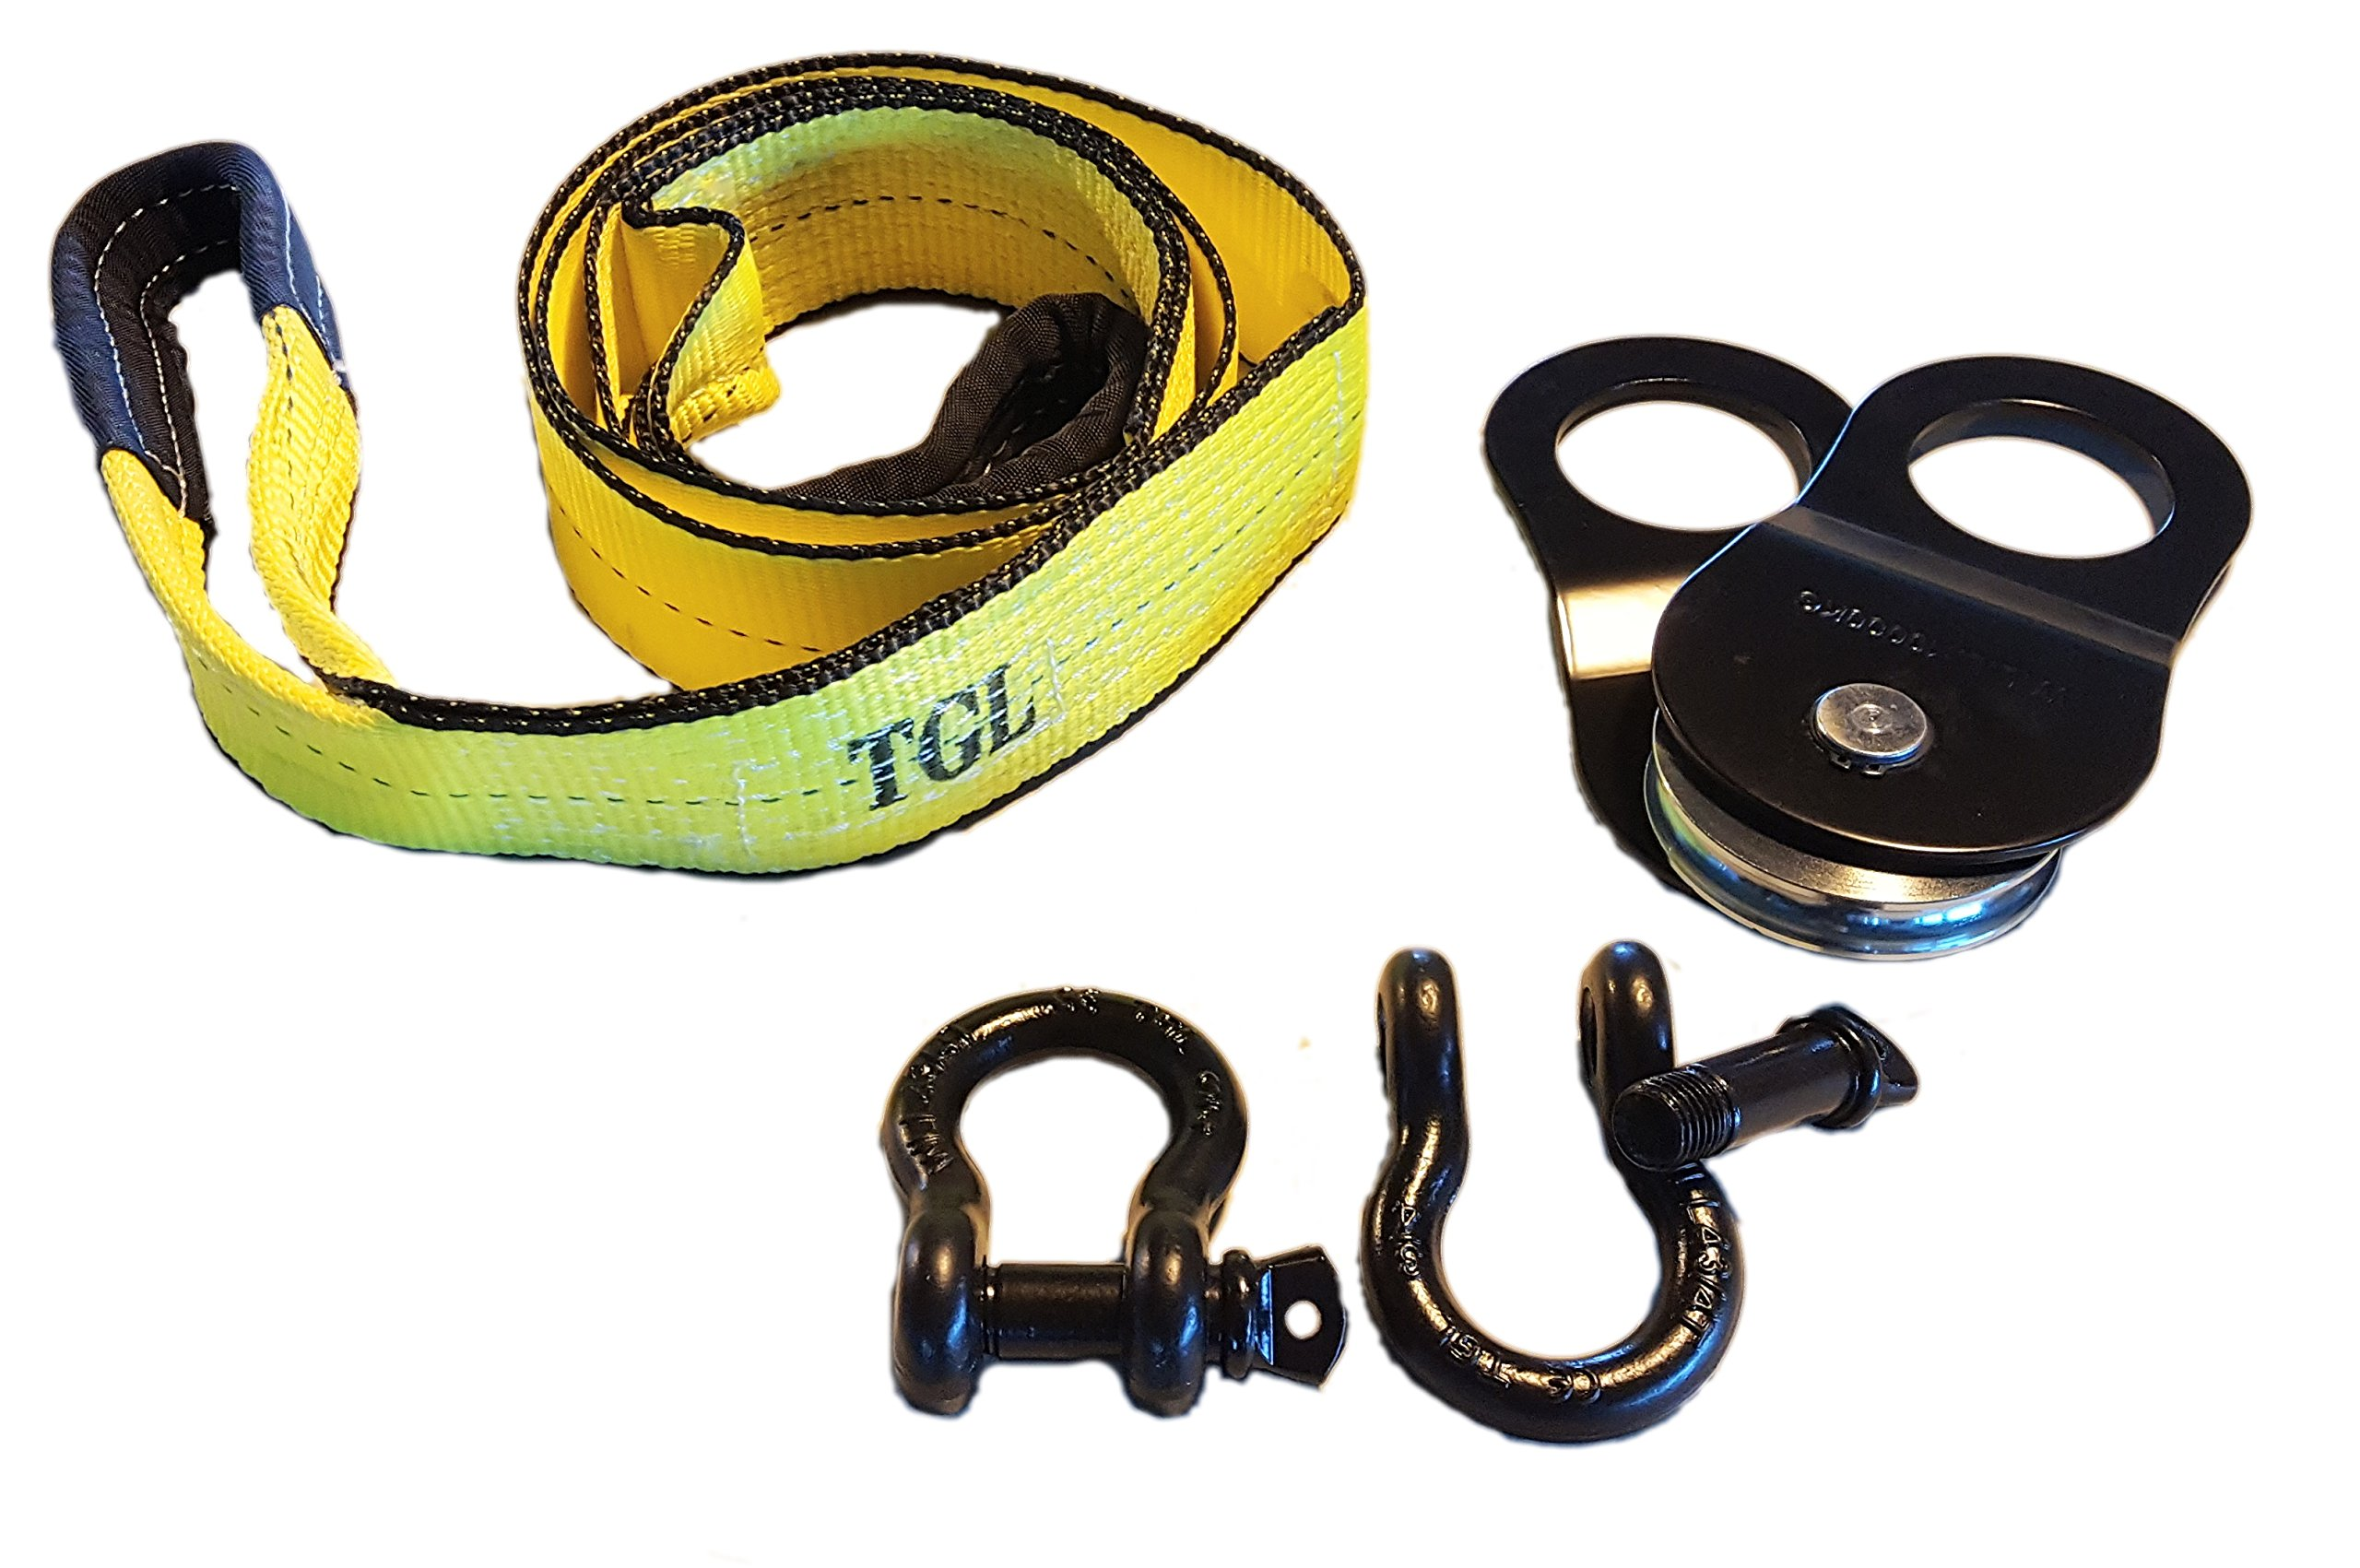 3'', 8' Tree Saver, Tow Strap with 2-pack D ring Shackles and 10 Ton Snatch Block